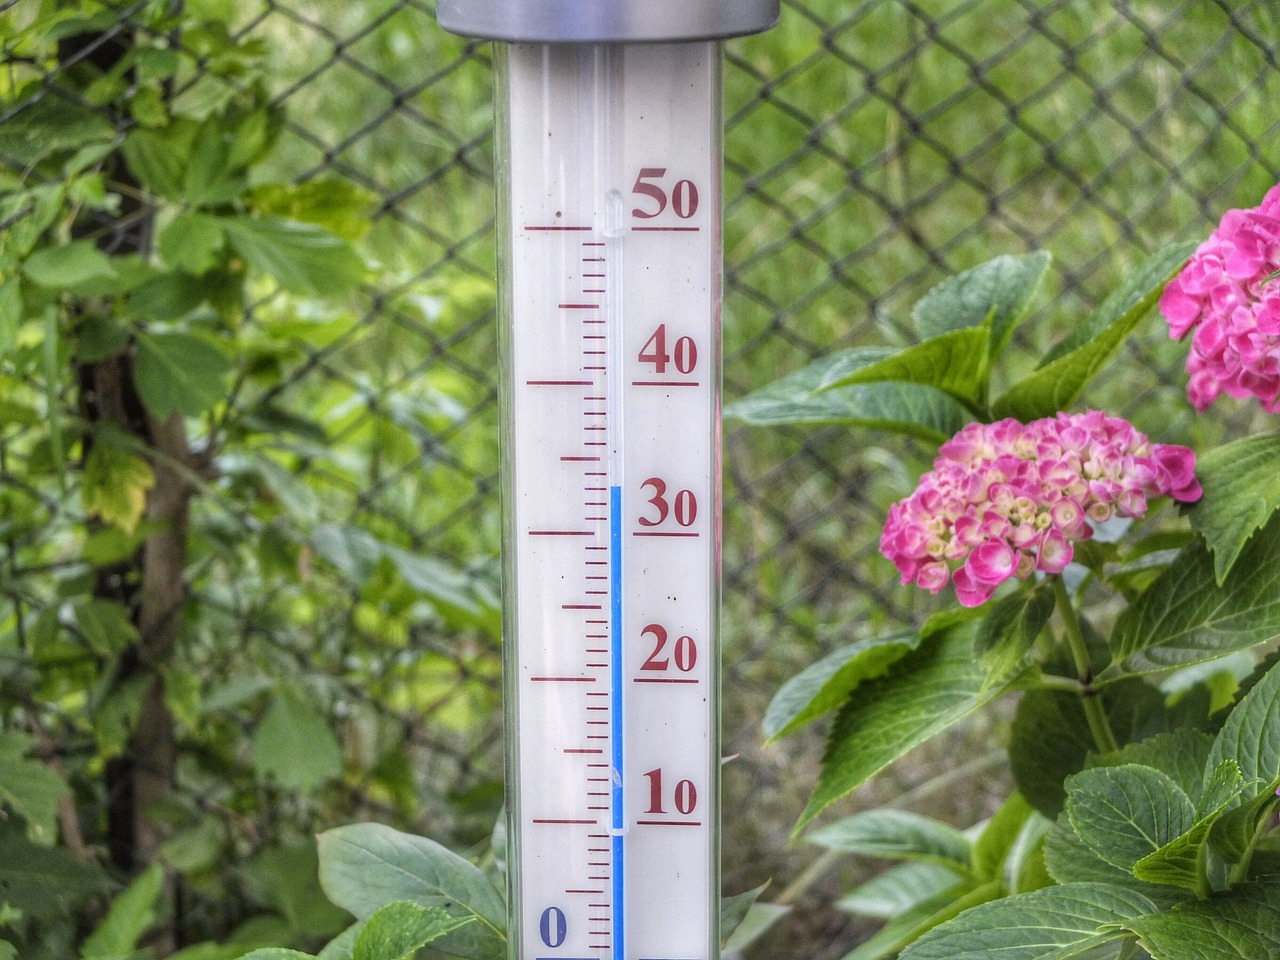 Thermometer showing over 30 decrees C. Photo: Pixabay.